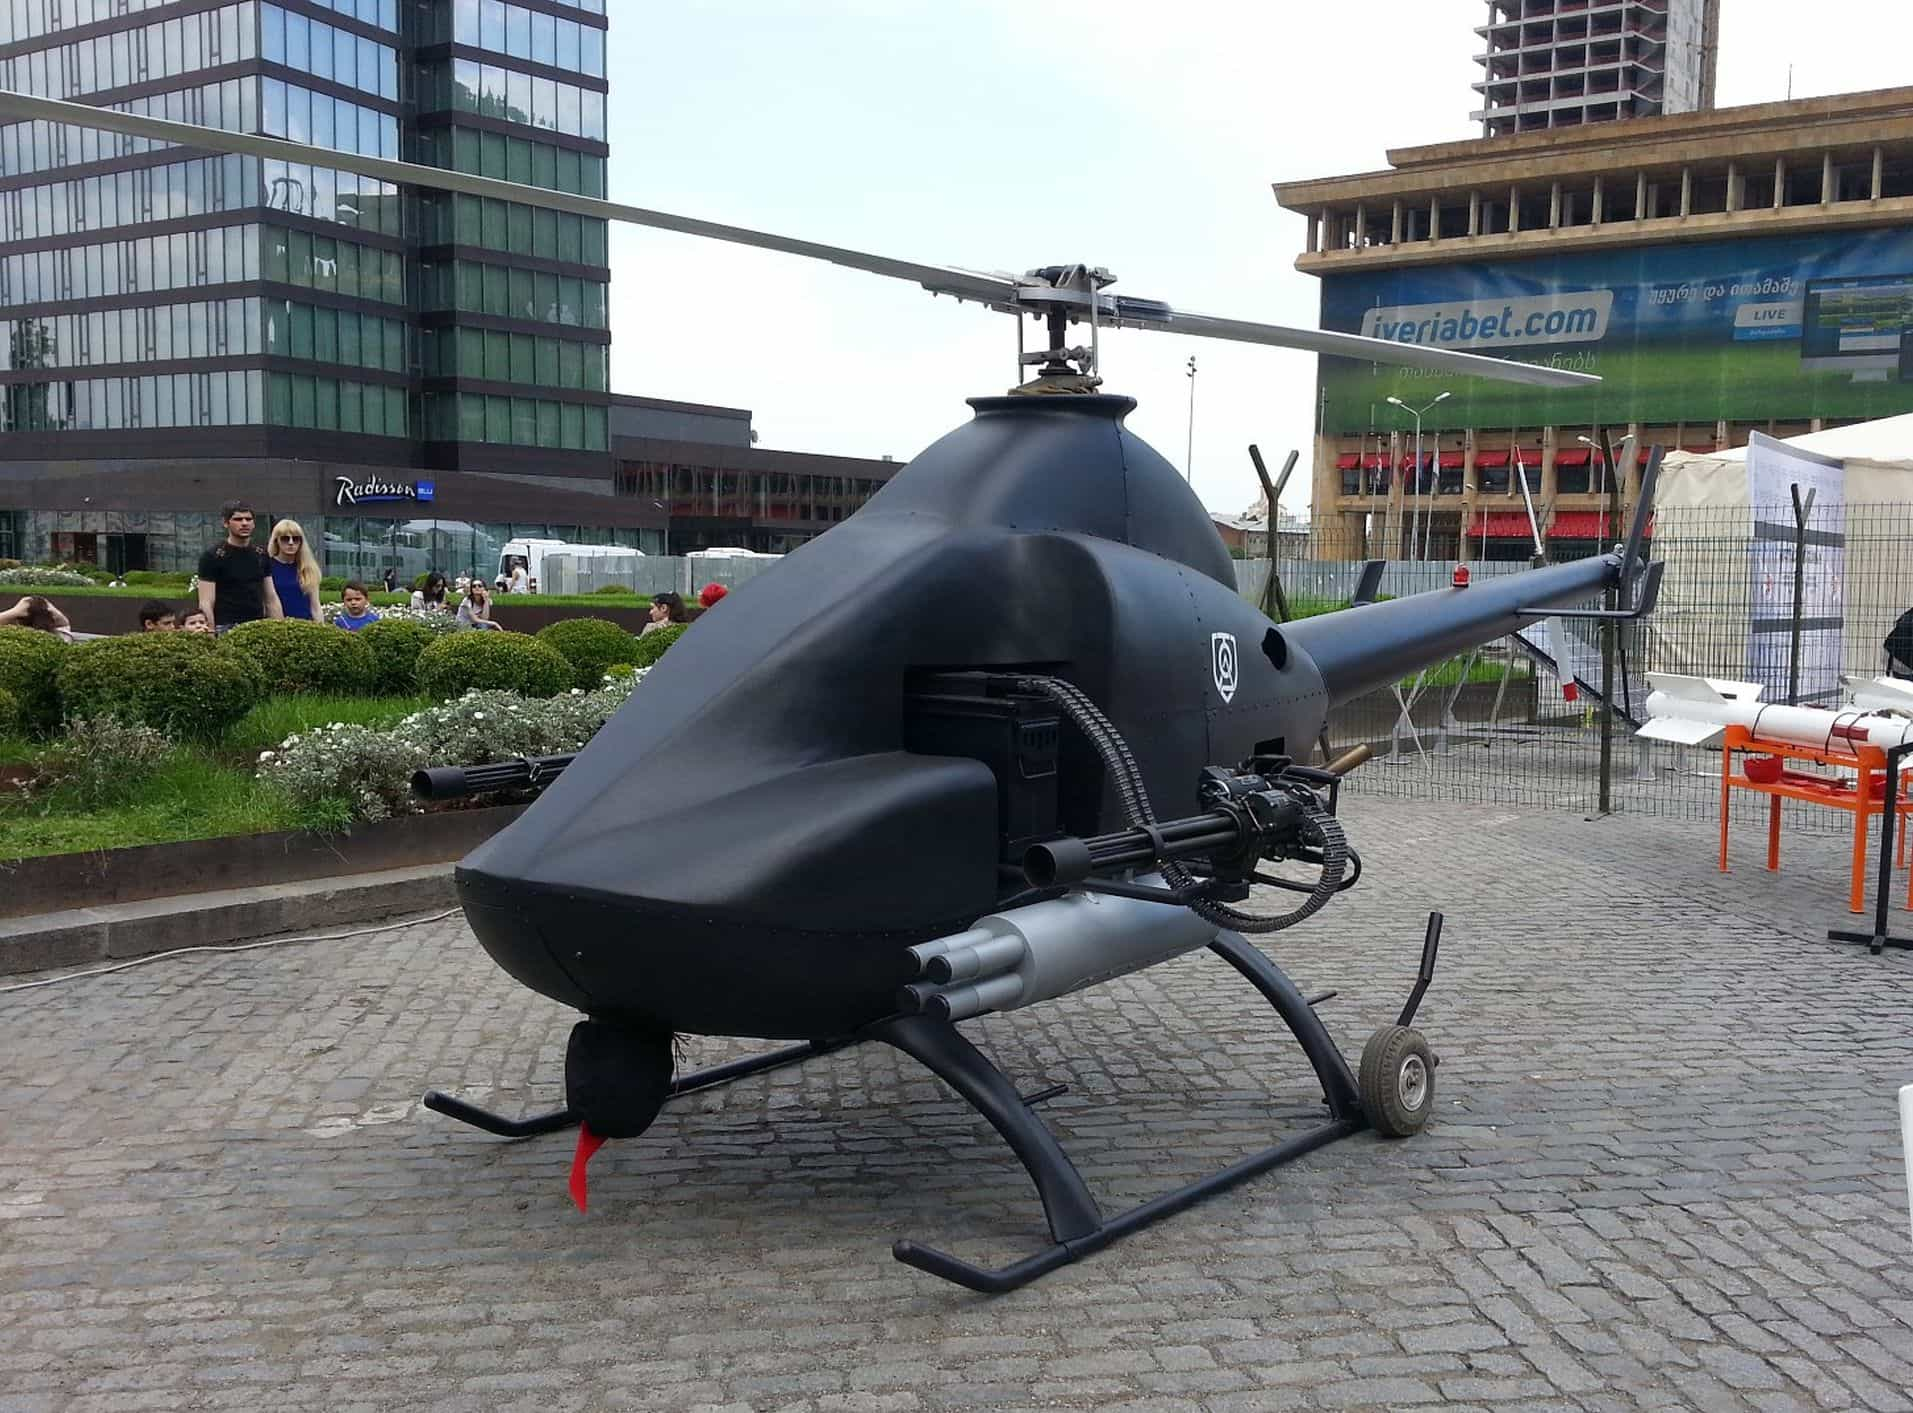 450 helicopter with China Unveils Unmanned Attack Helicopter 70476 on Legacy 450 as well Helicopter Headset additionally File A2524 Denmark AW101 M 513 RIAT2013 further Renault Talisman Side View 7116 as well Aircraft.